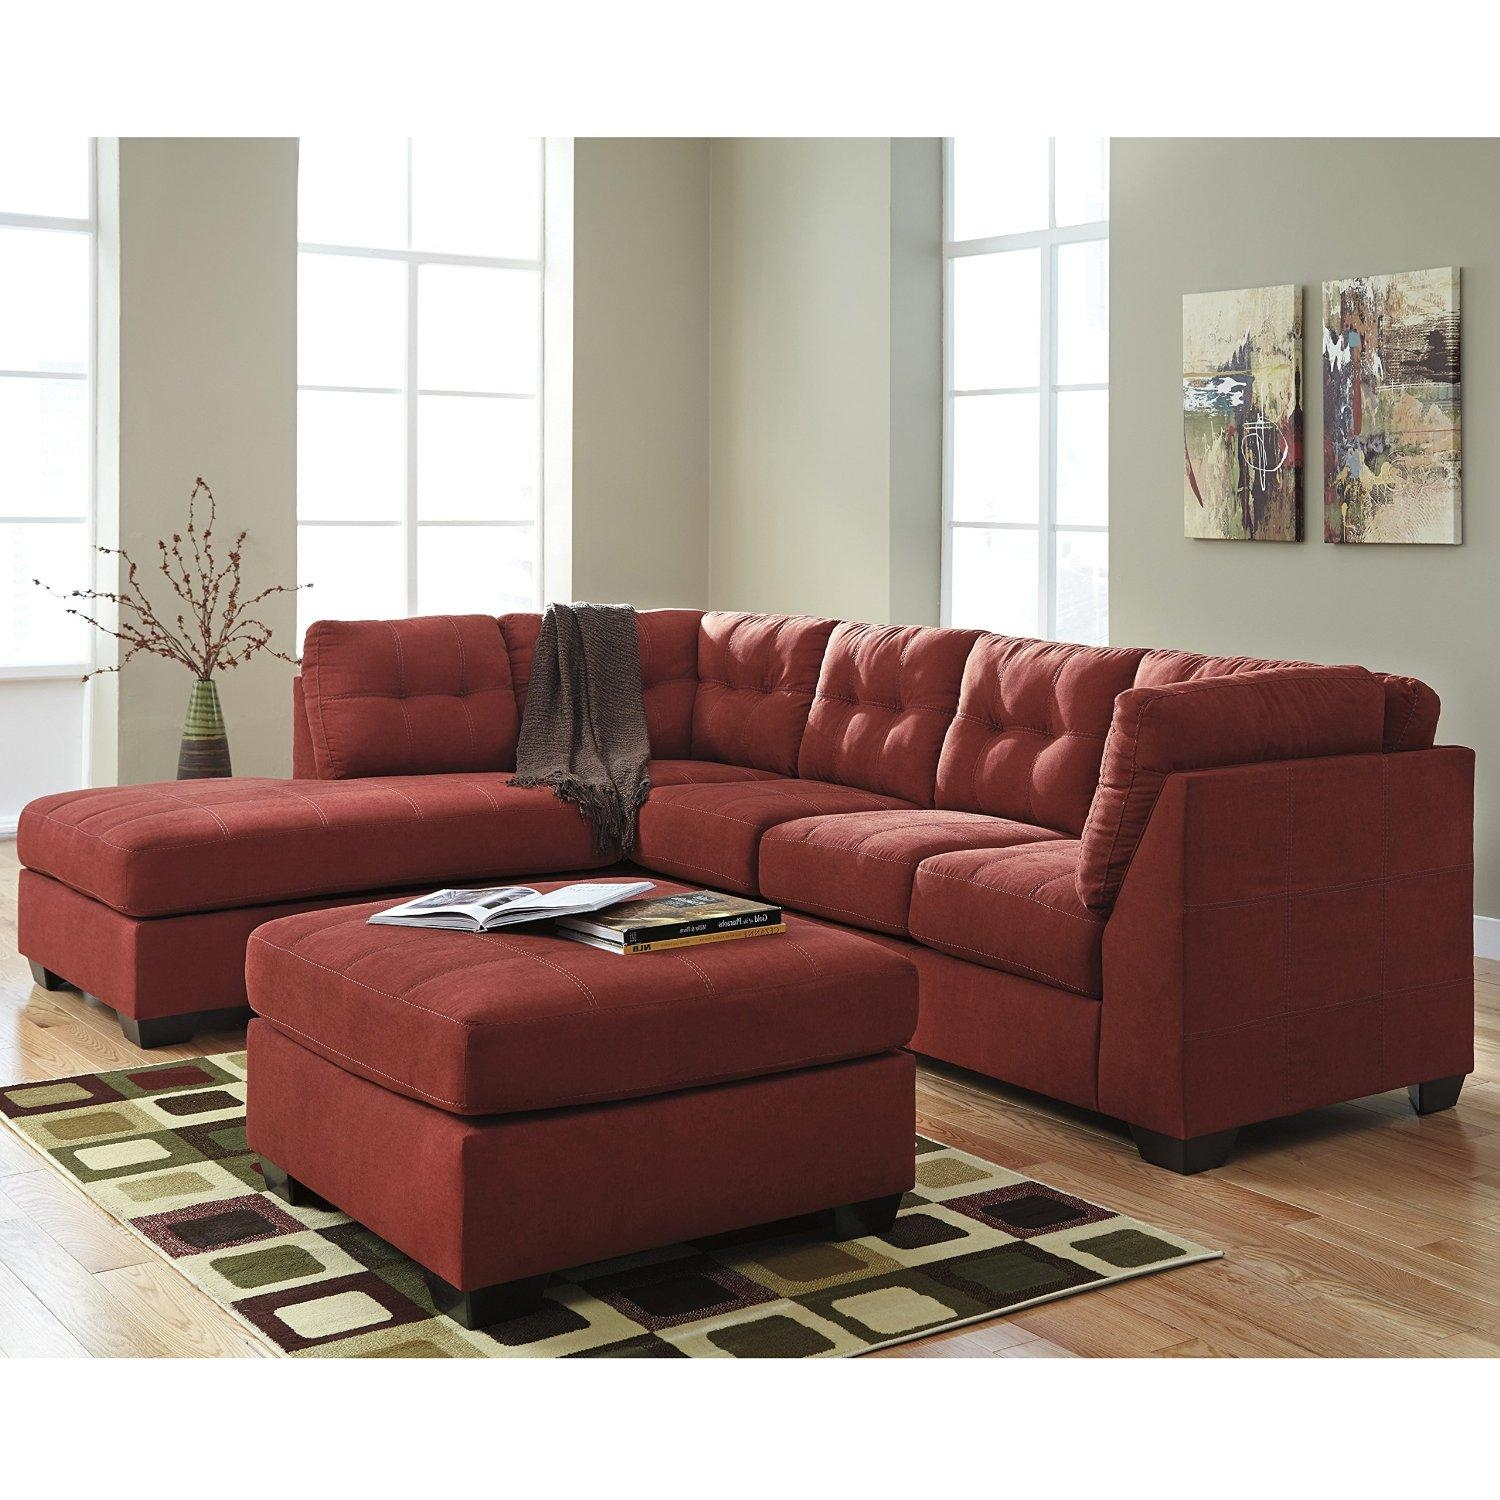 Berkline Benchcraft Furniture Images – Reverse Search Within Berkline Sectional Sofa (Image 1 of 15)